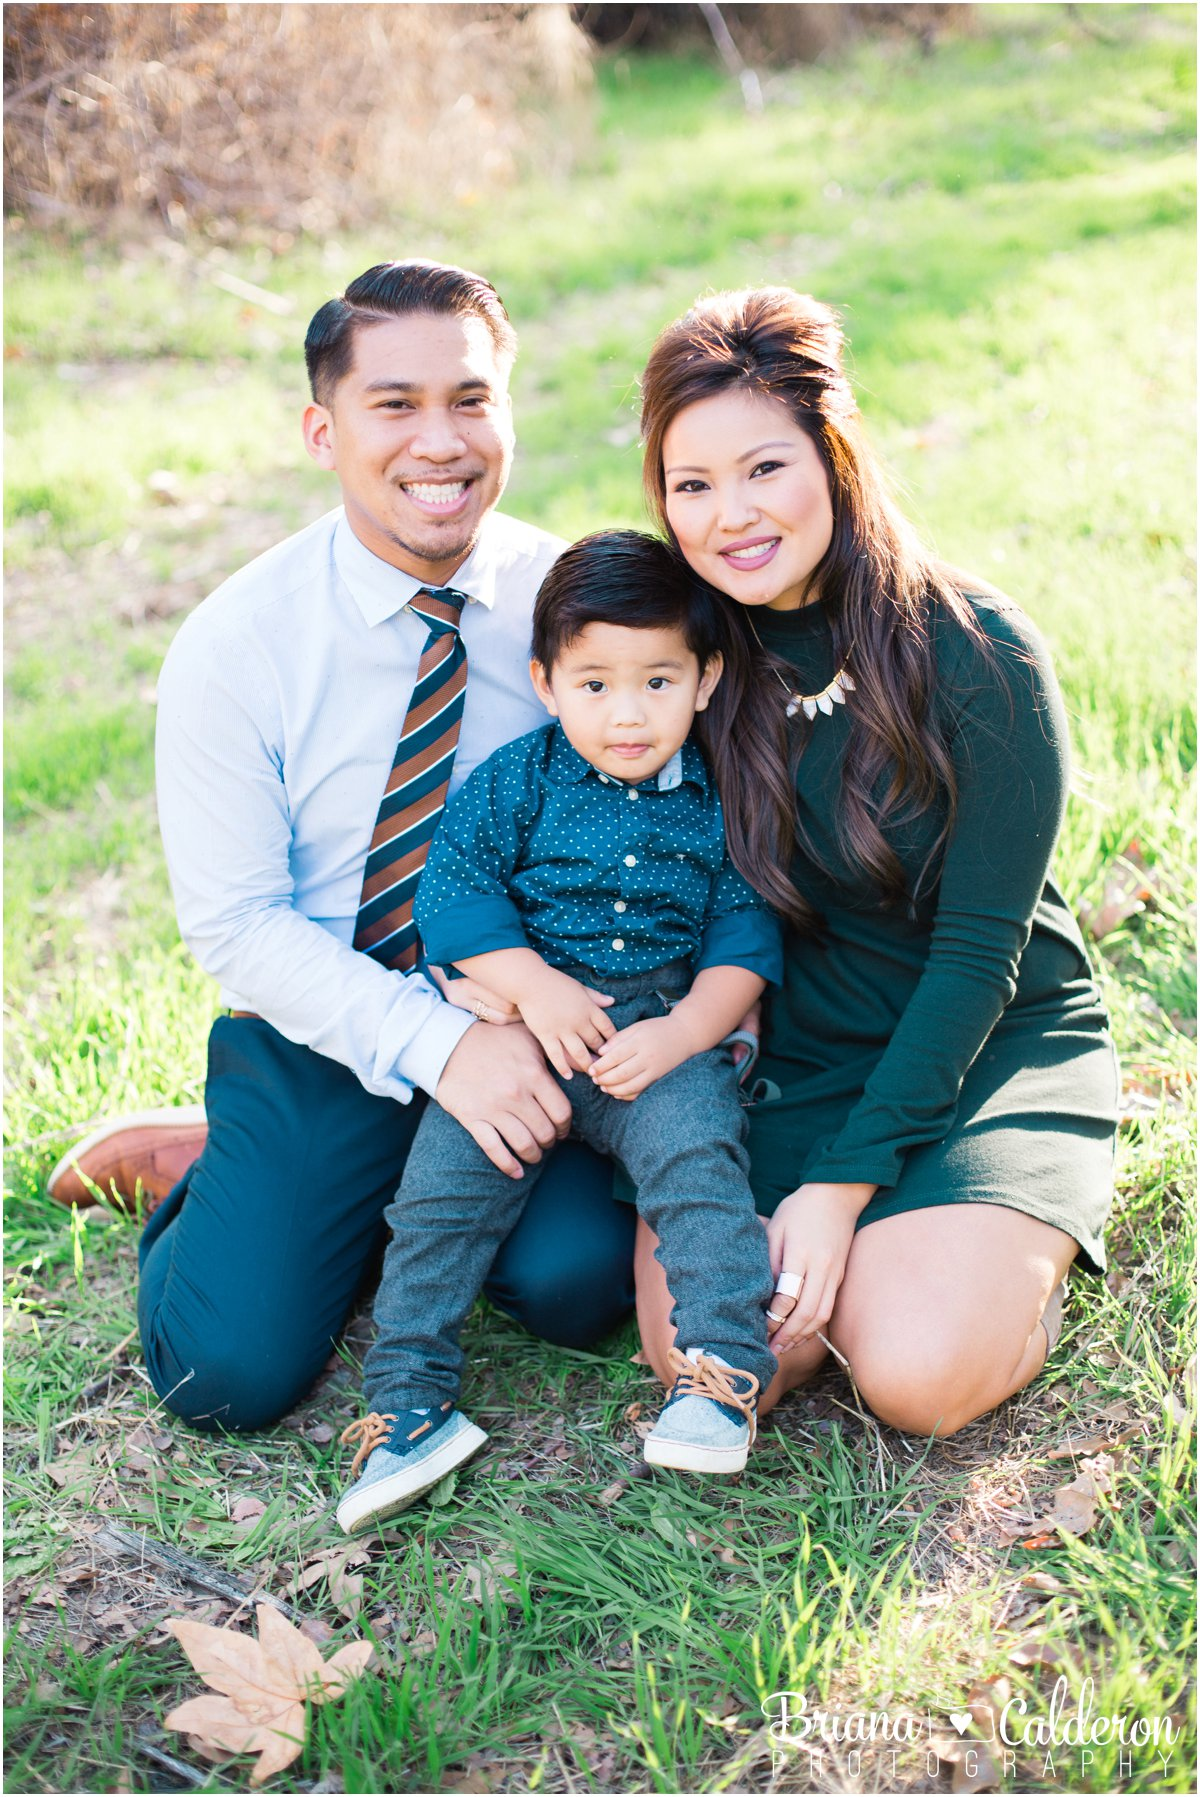 Fall family mini session in San Jose, CA outside of Alum Rock Park. Photos by Briana Calderon Photography based in the San Francisco Bay Area in California.